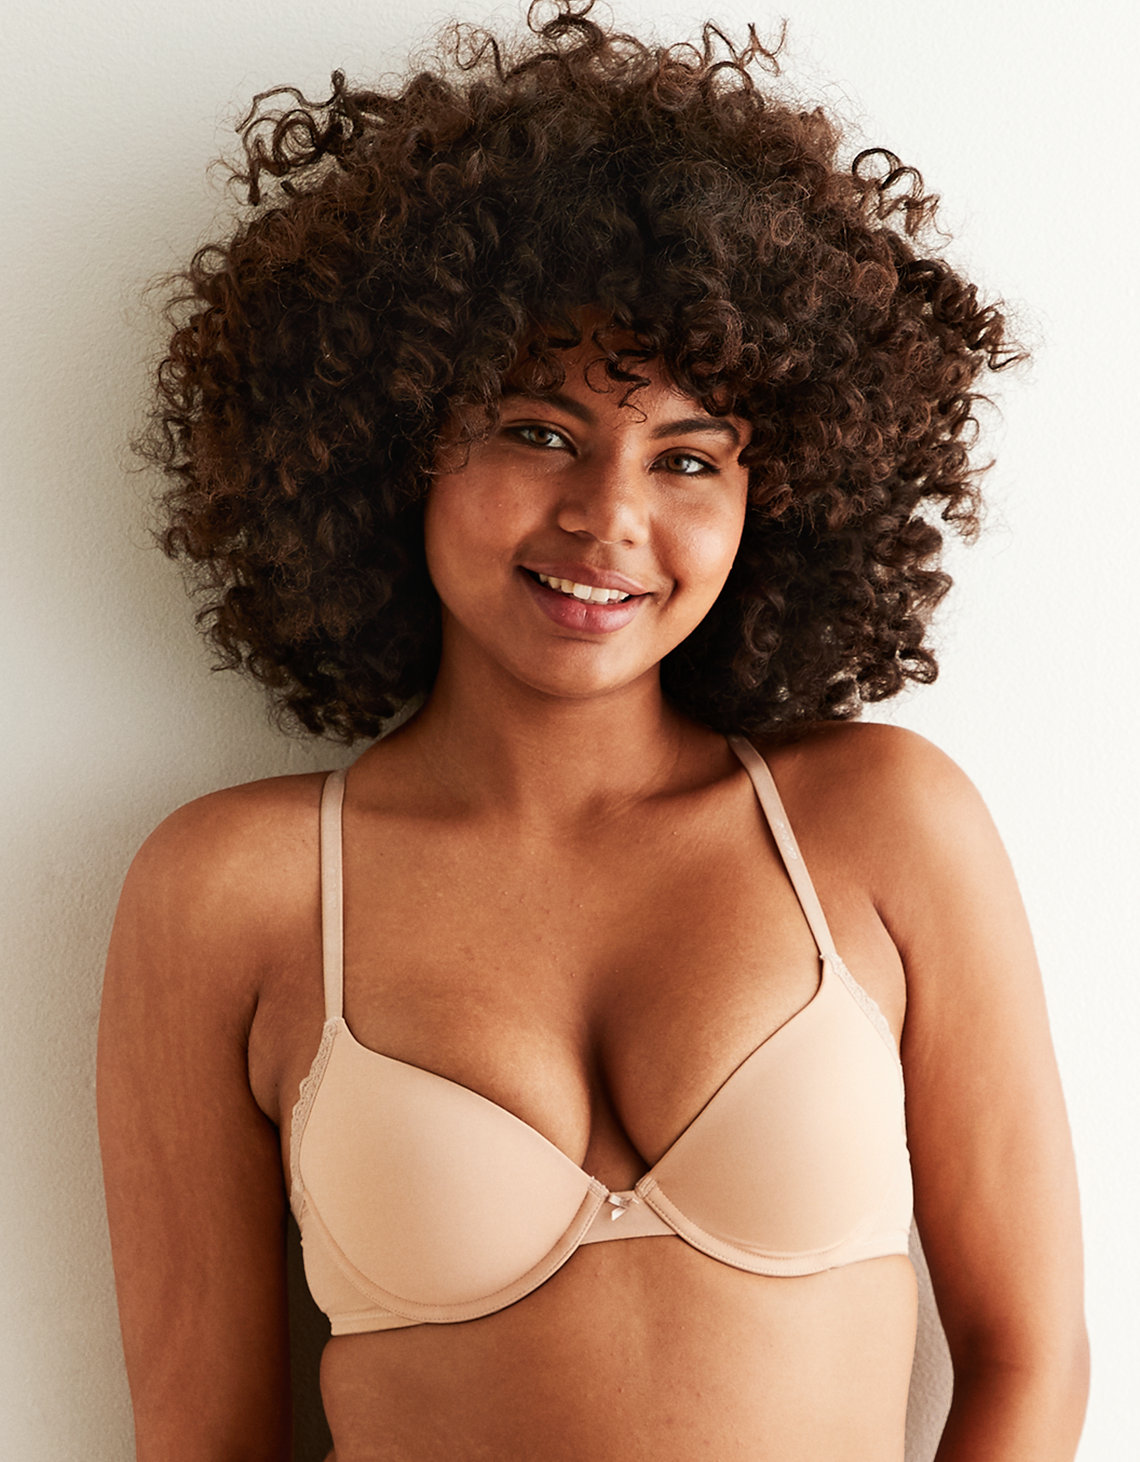 85b889f2666d8 Aerie Real Happy Demi Push Up Bra. Placeholder image. Product Image